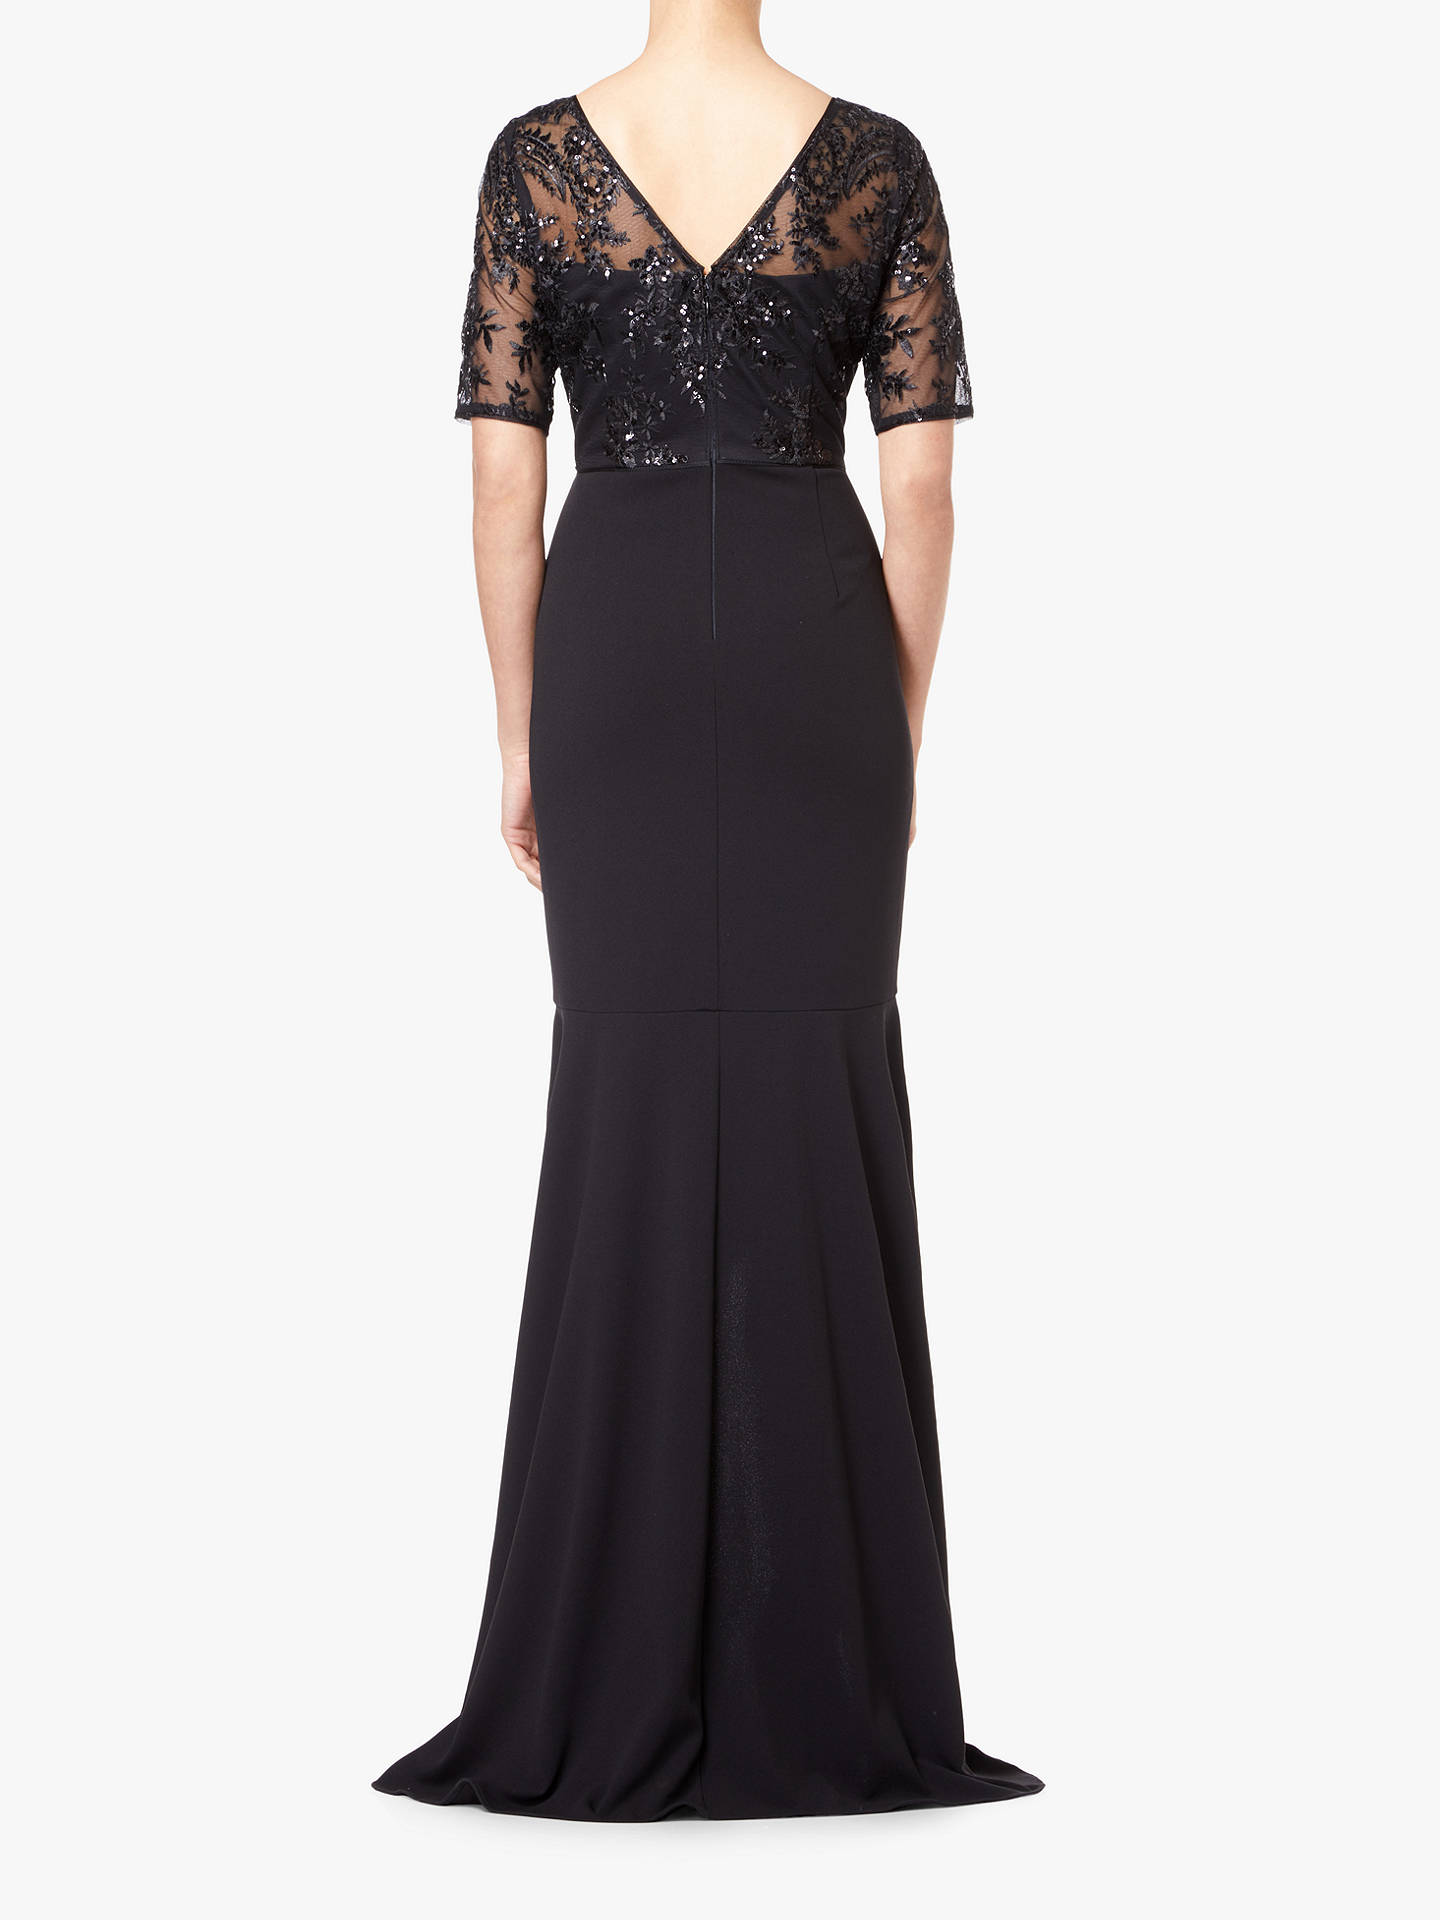 Buy Adrianna Papell Long Sequin Dress, Black, 26XL Online at johnlewis.com